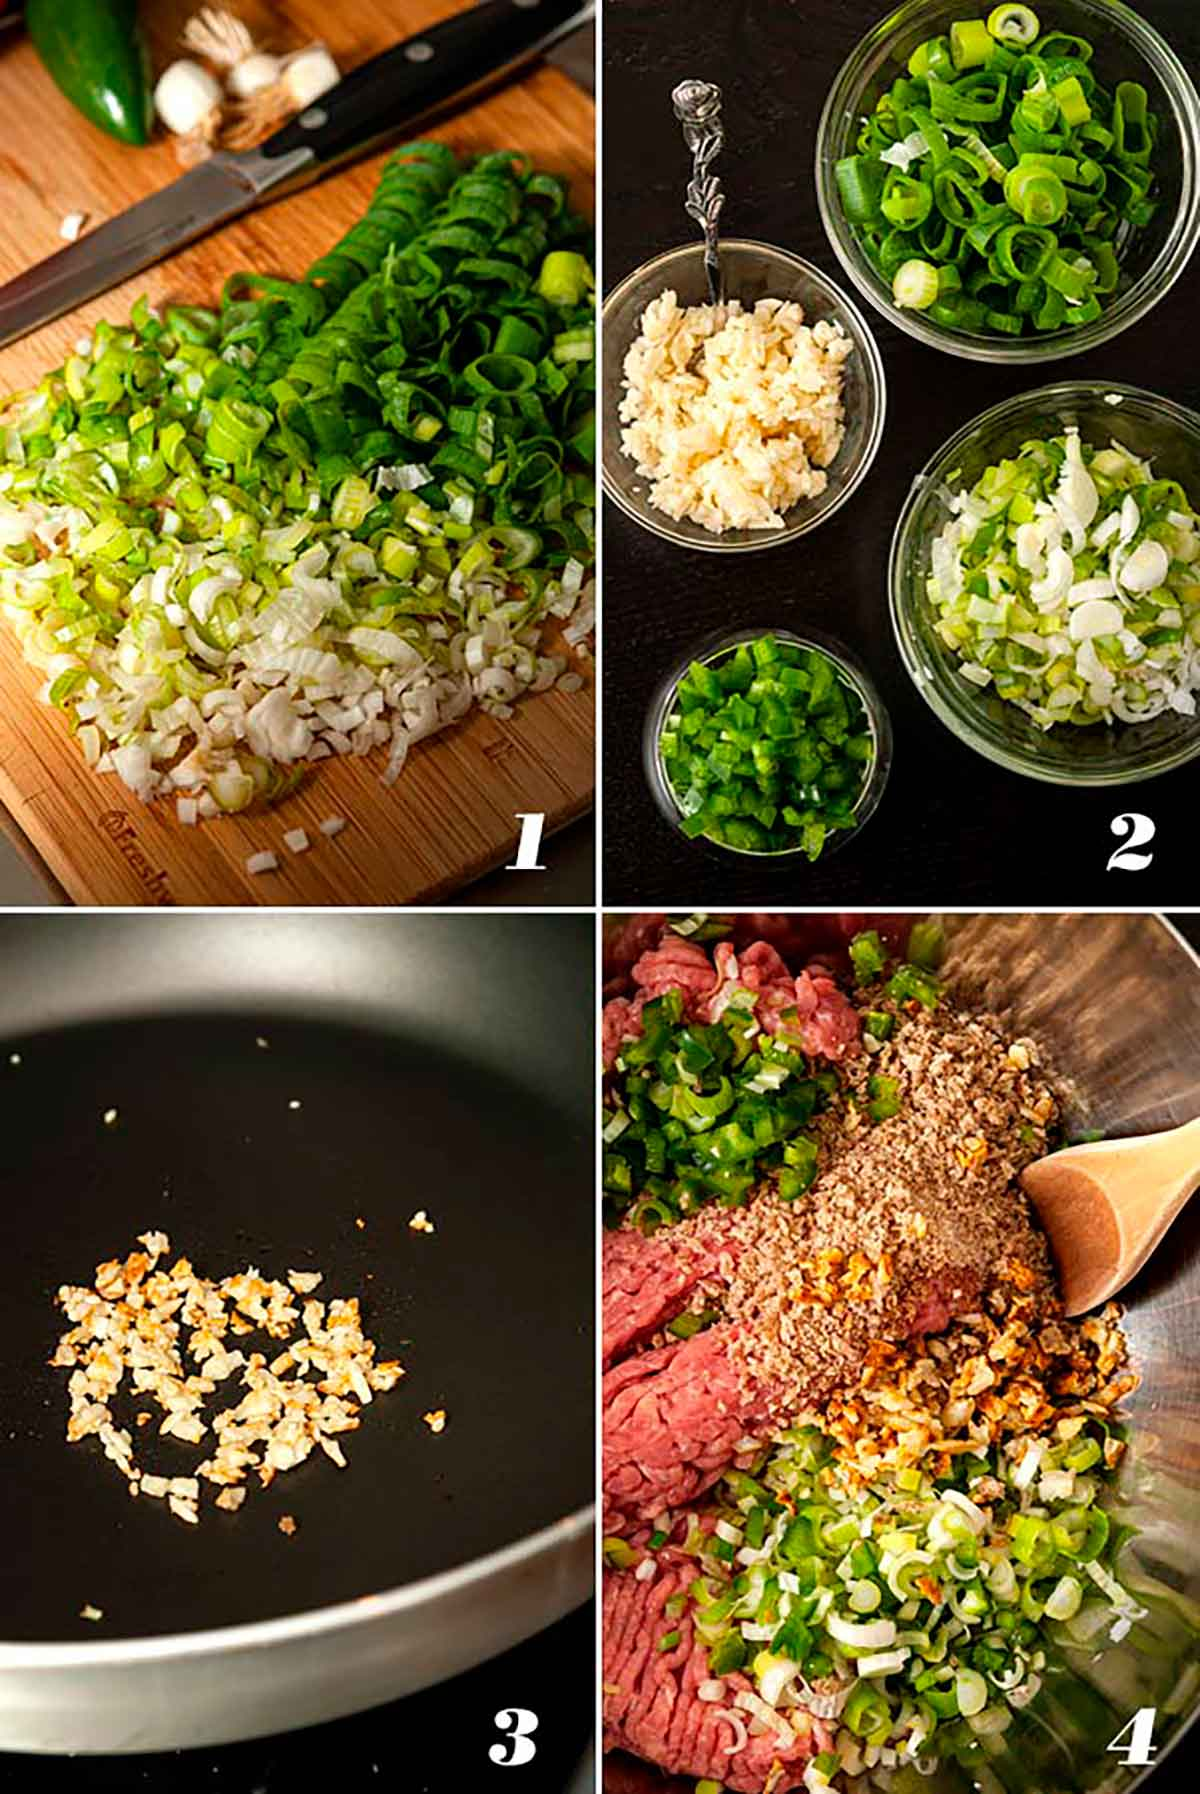 A collage of 4 numbered images showing how to make turkey meatballs.